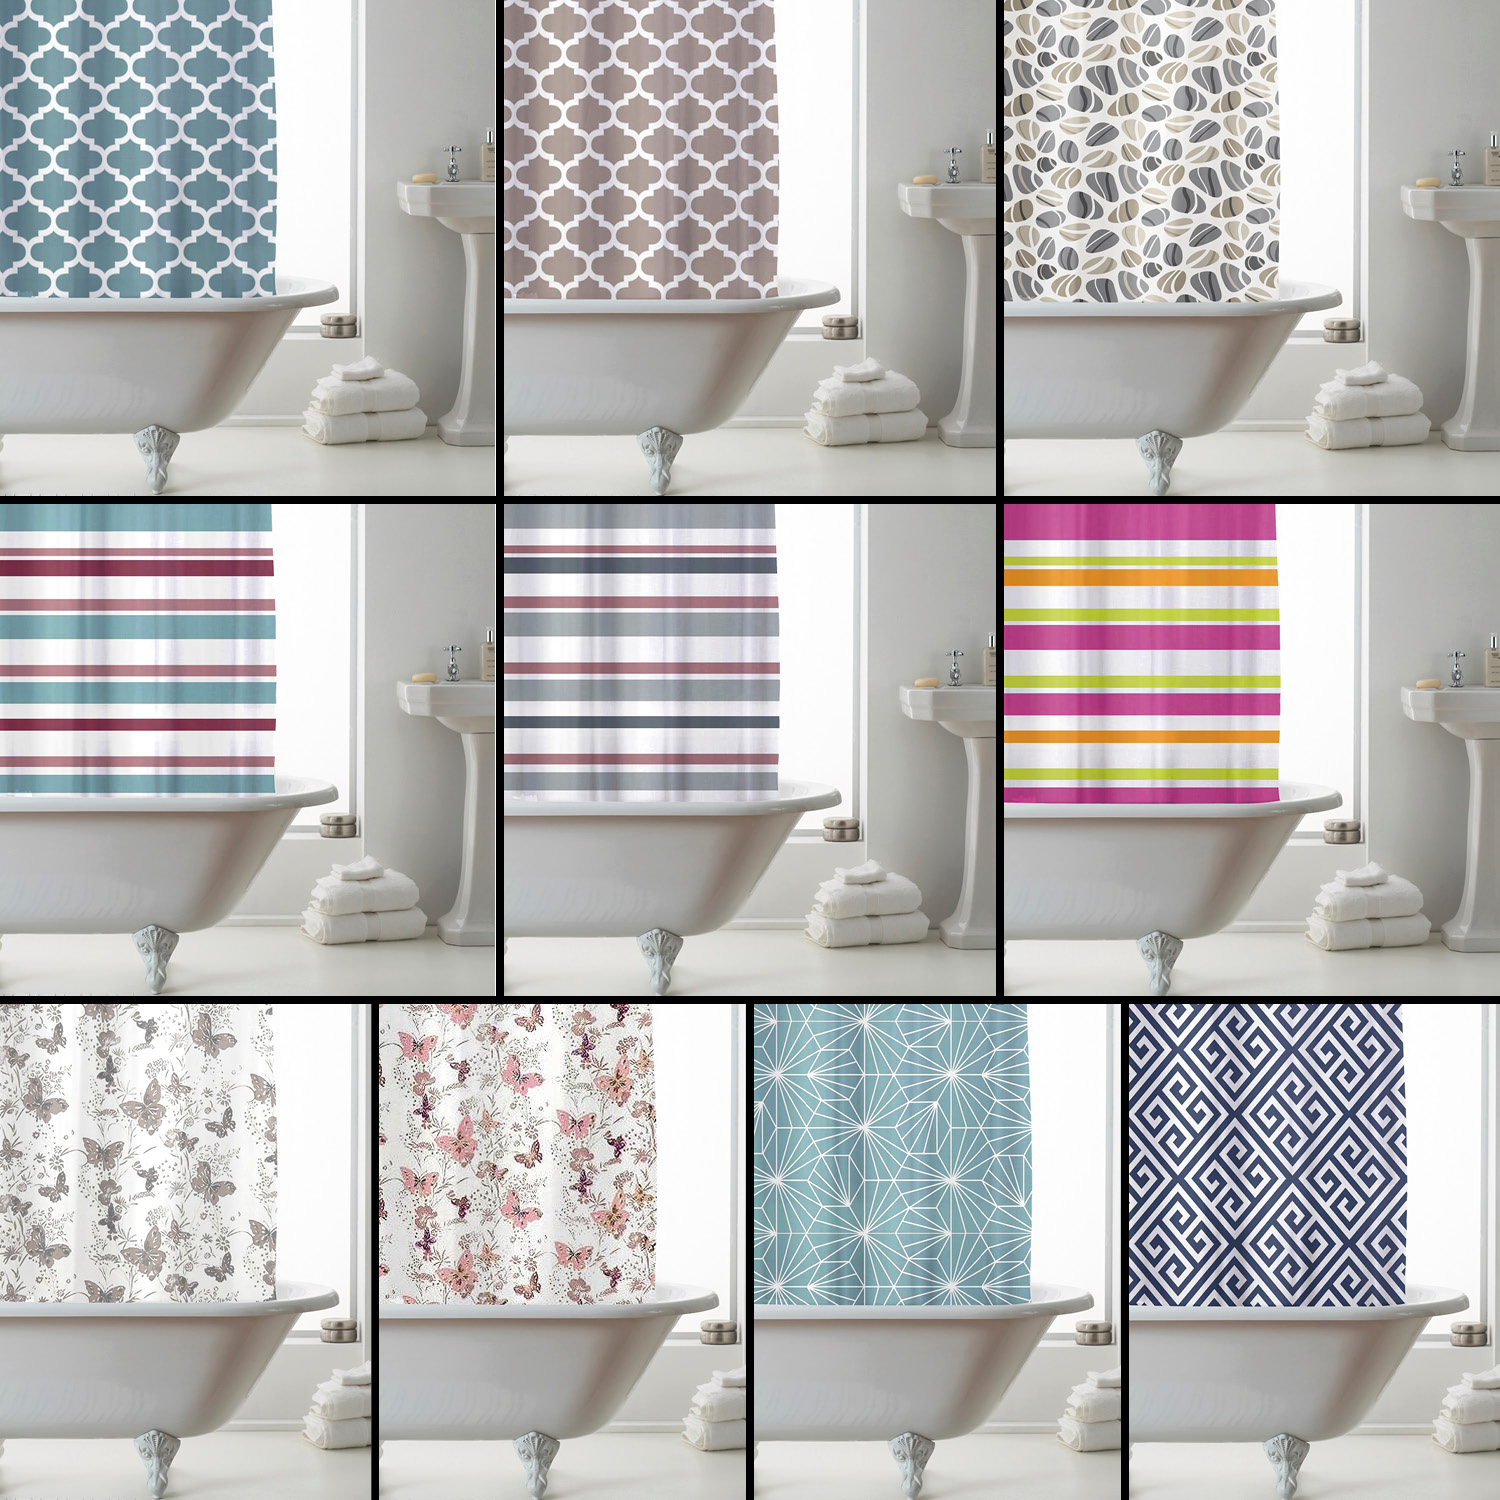 Details About Variety Of Luxury Design Peva Shower Curtain Multicoloured Striped Floral